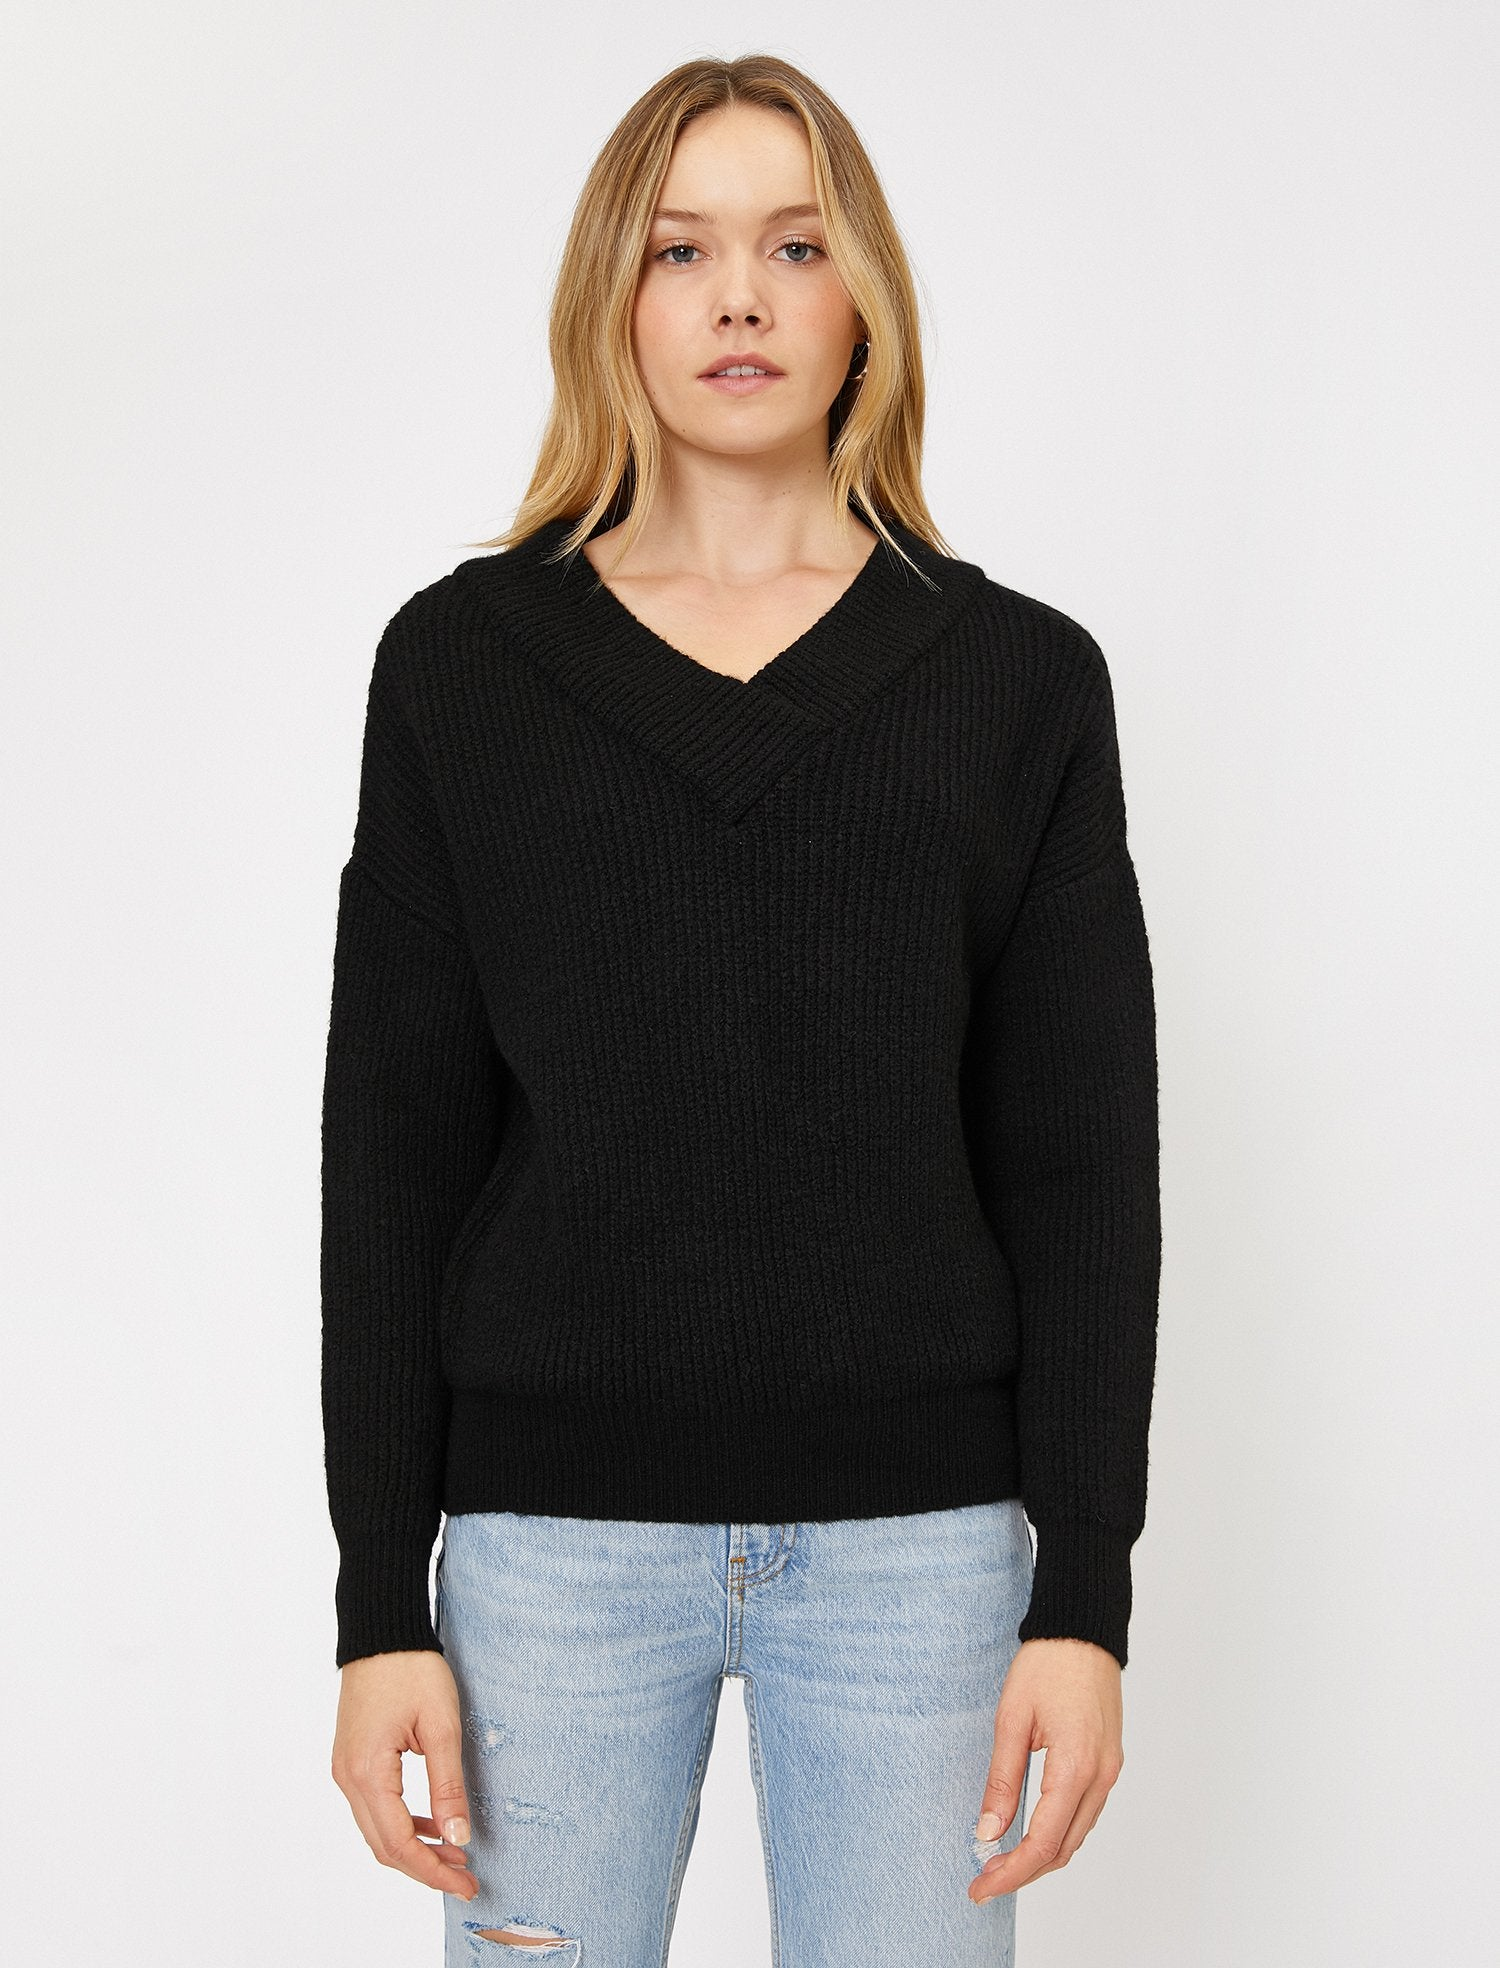 Ribbed V Neck Sweater in Black